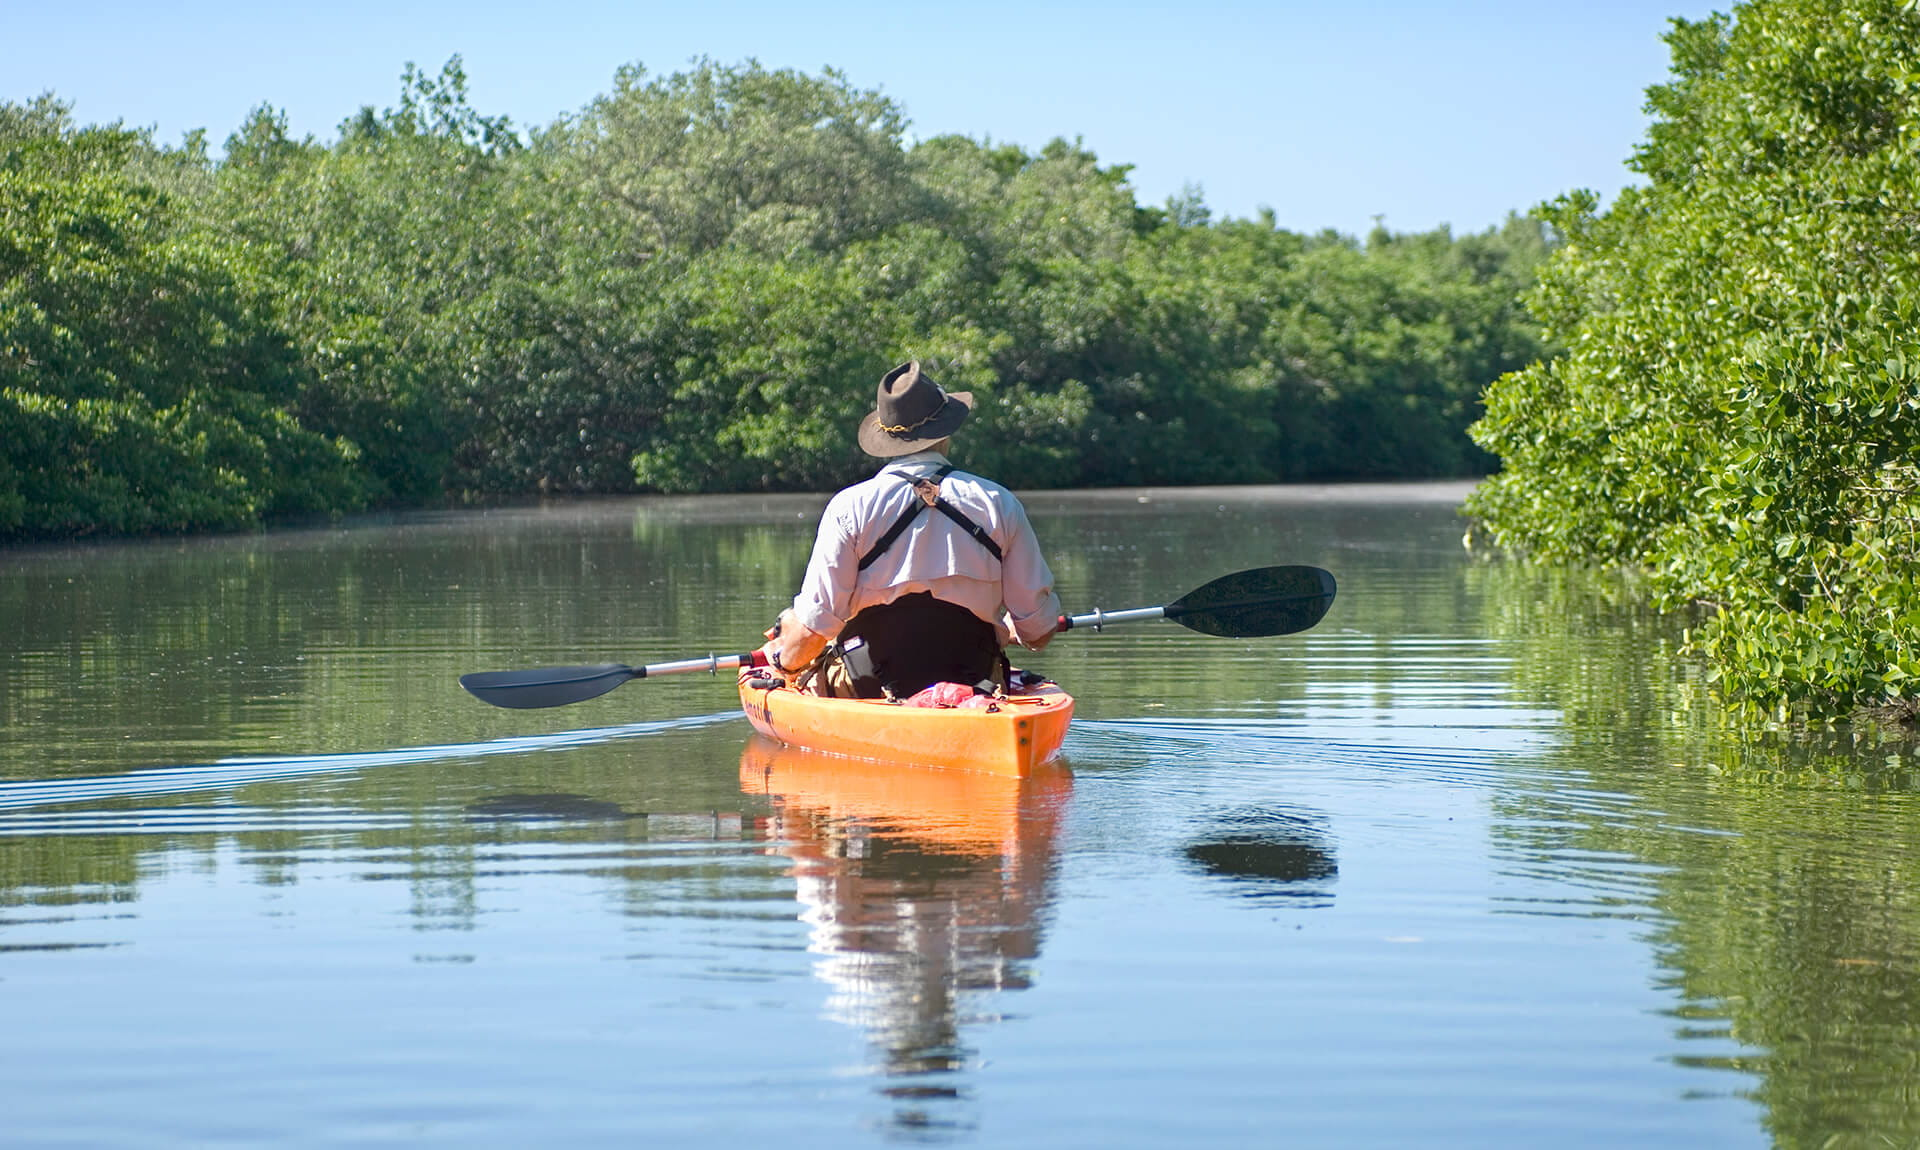 A person on a kayak